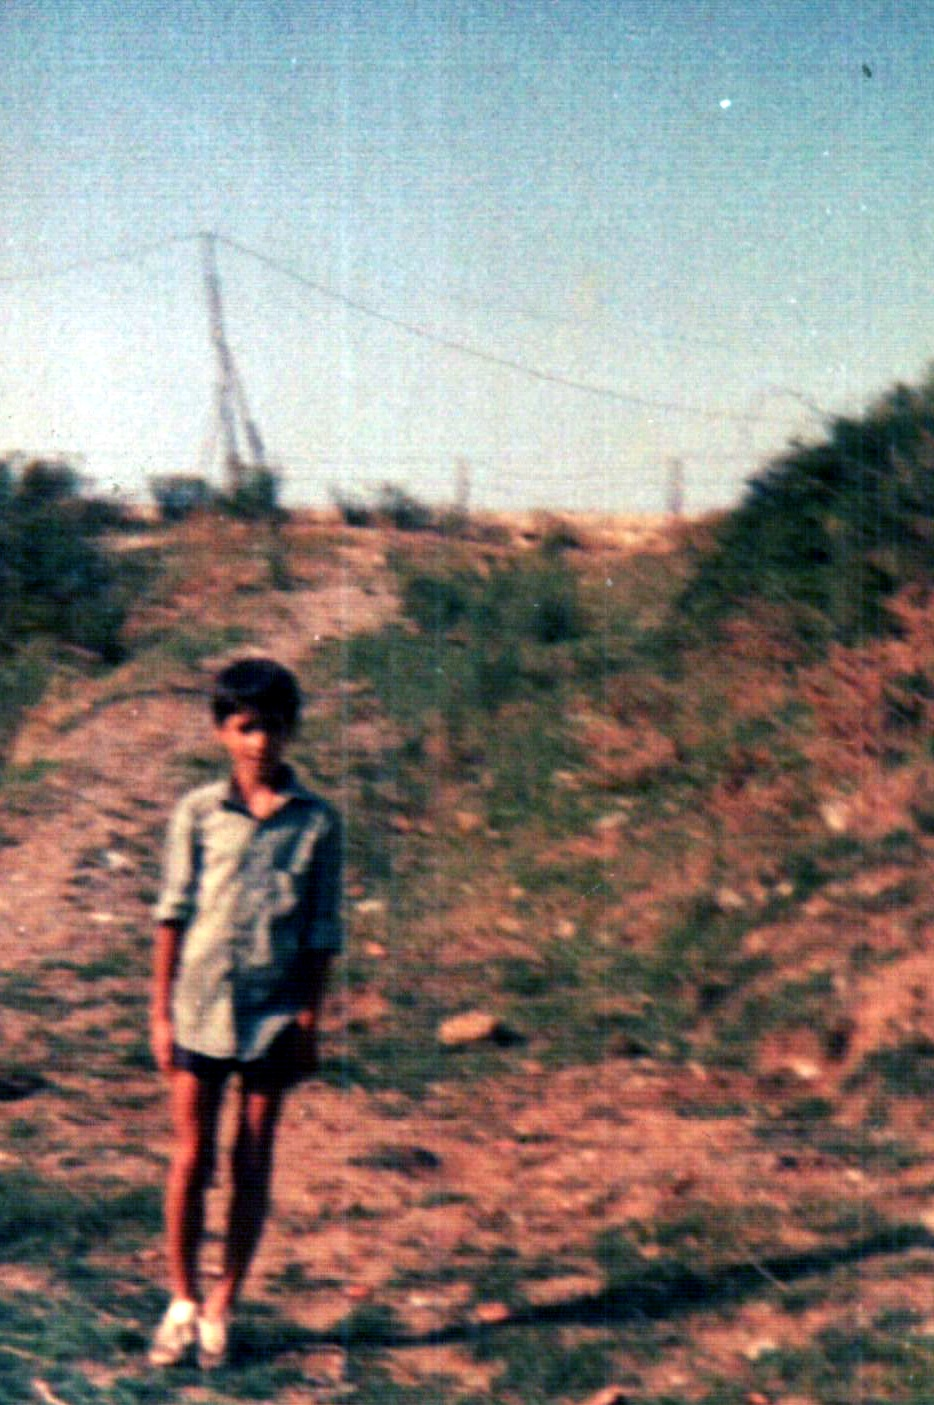 It's me in 1982 - a lazy summer afternoon in Zonguldak